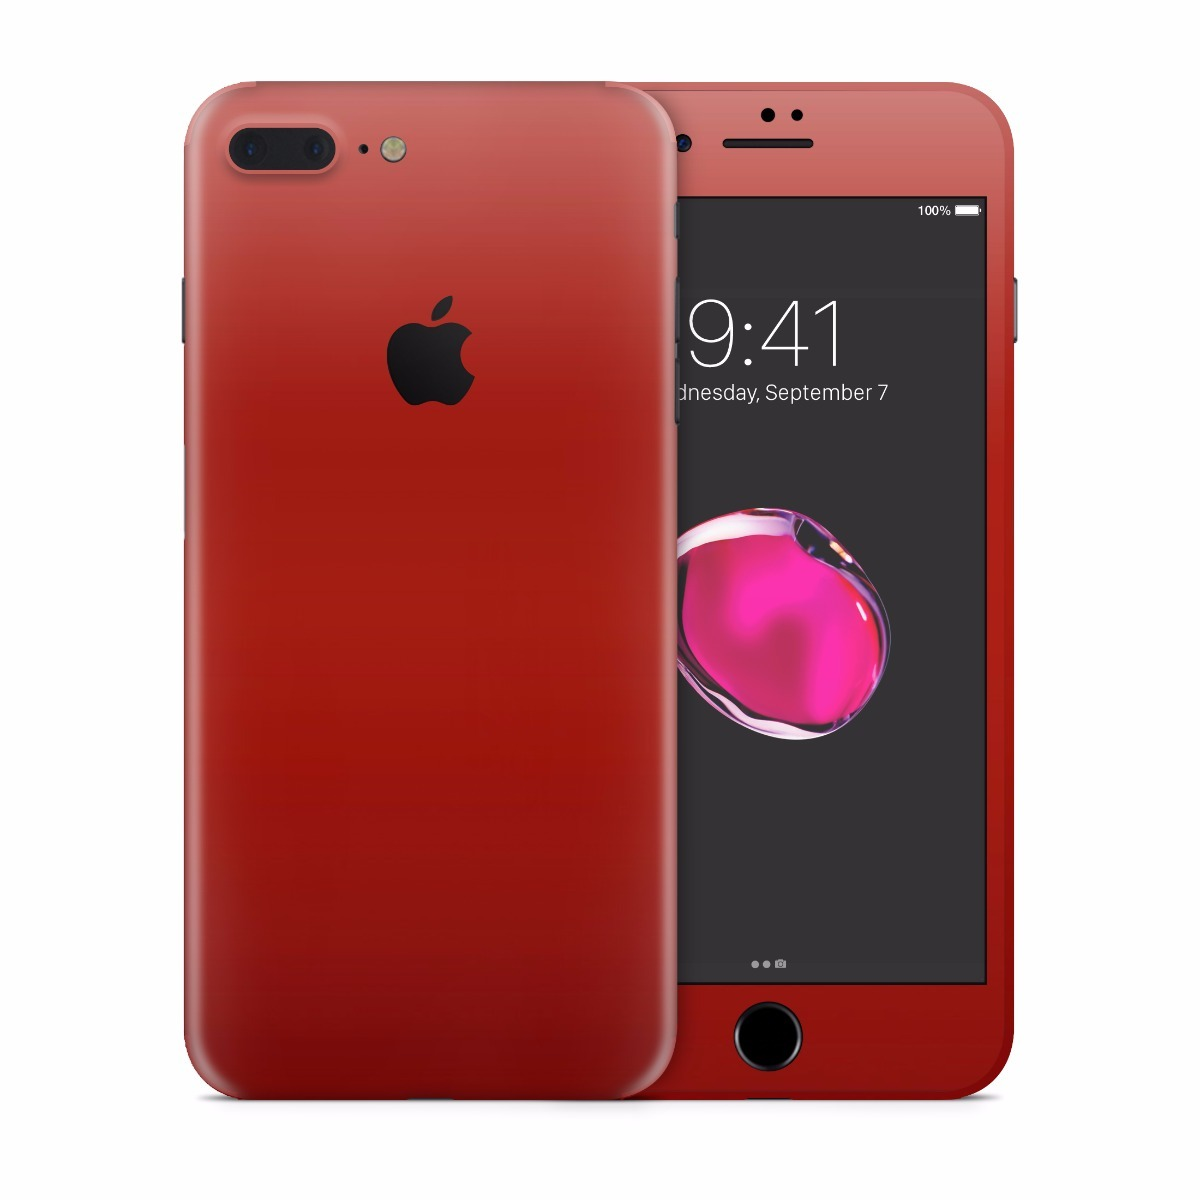 Unboxing Del IPhone 8 Plus Rojo